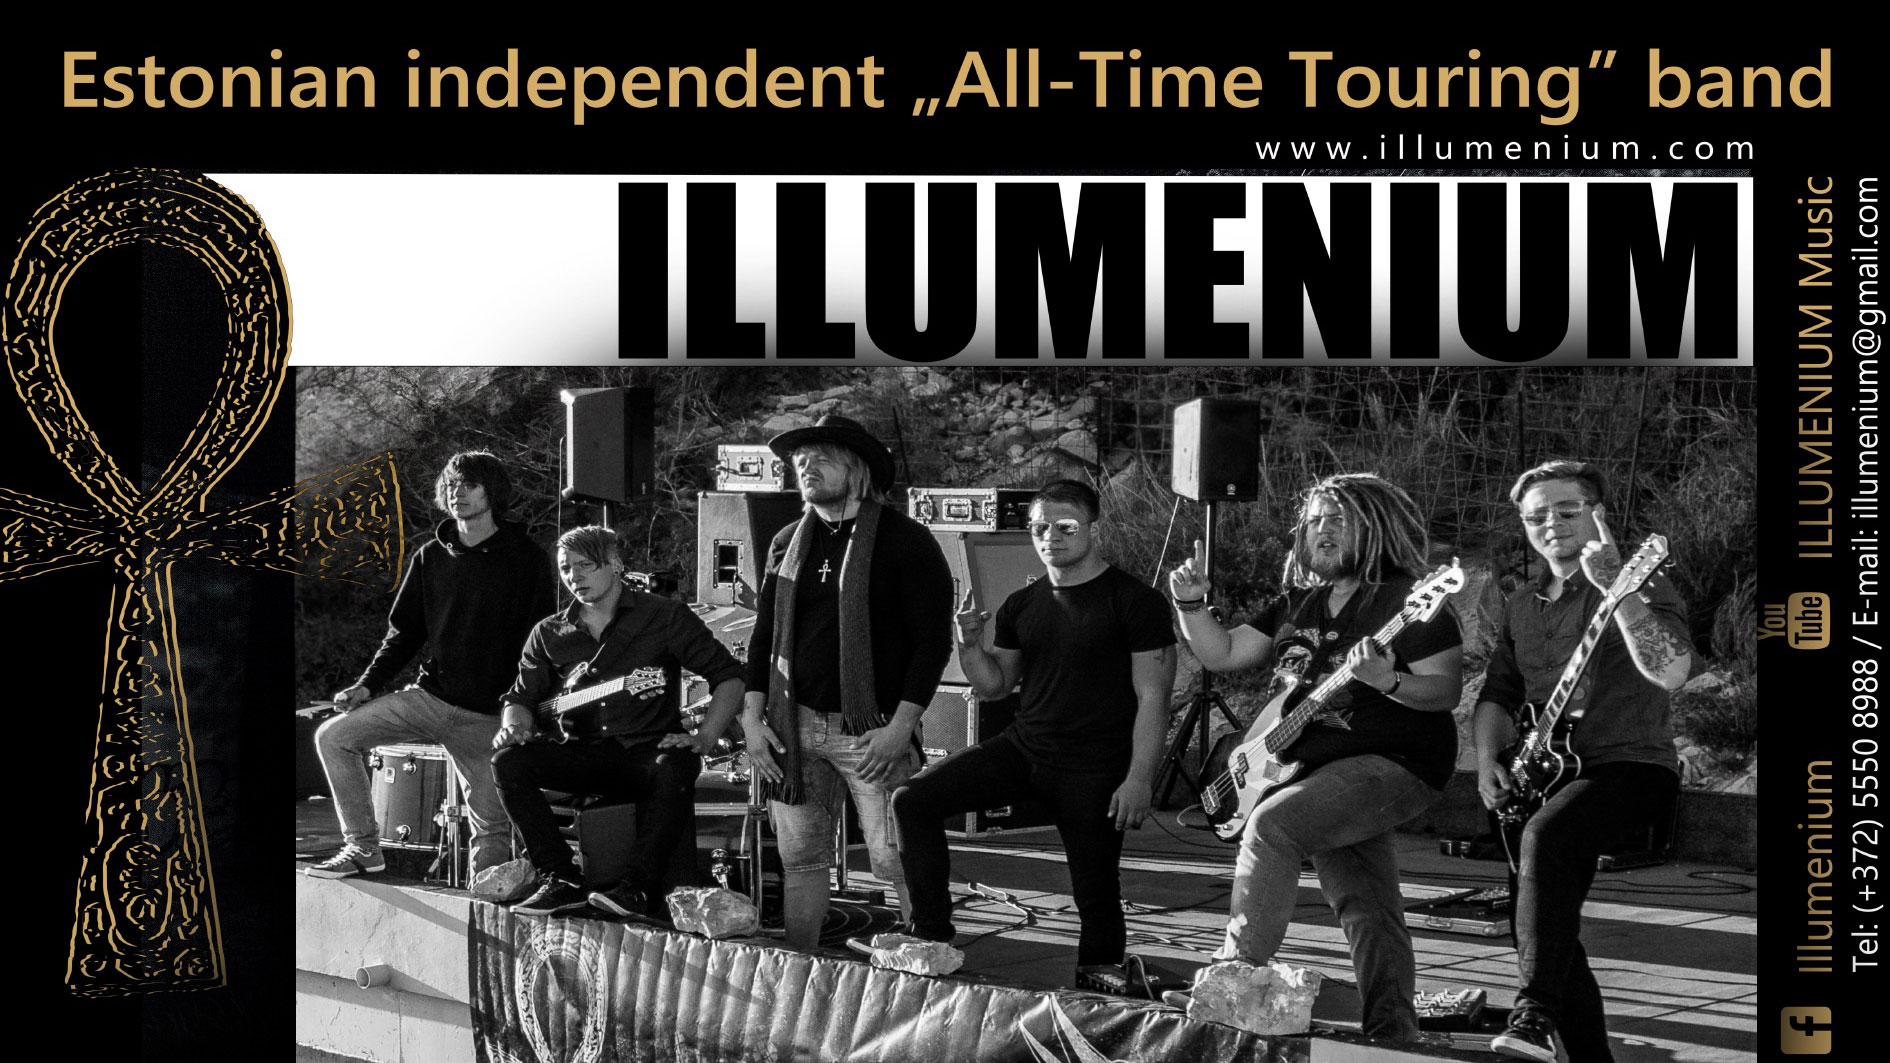 Wednesday, 03.04.2019, 14:30-15:30, ILLUMENIUM